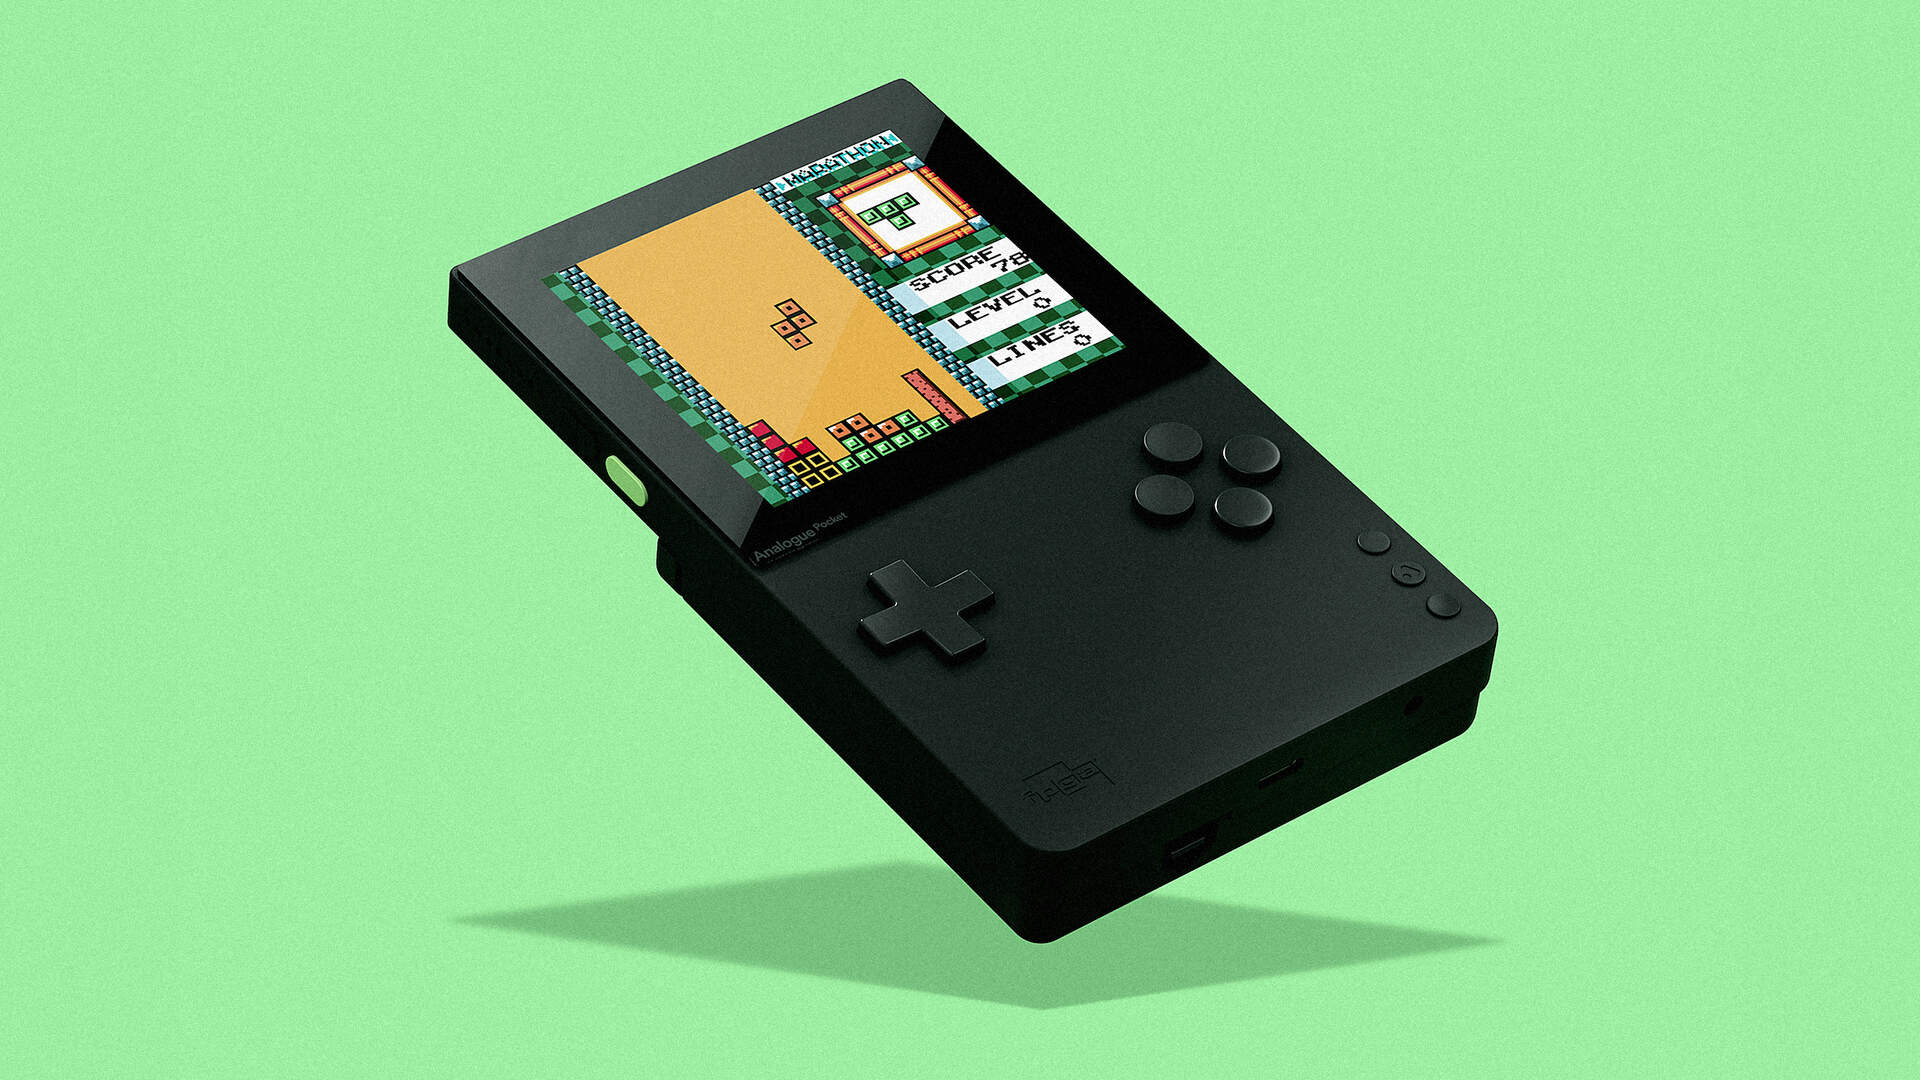 Analogue Pocket Goes Up For Pre-Order, Sells Out in Under an Hour